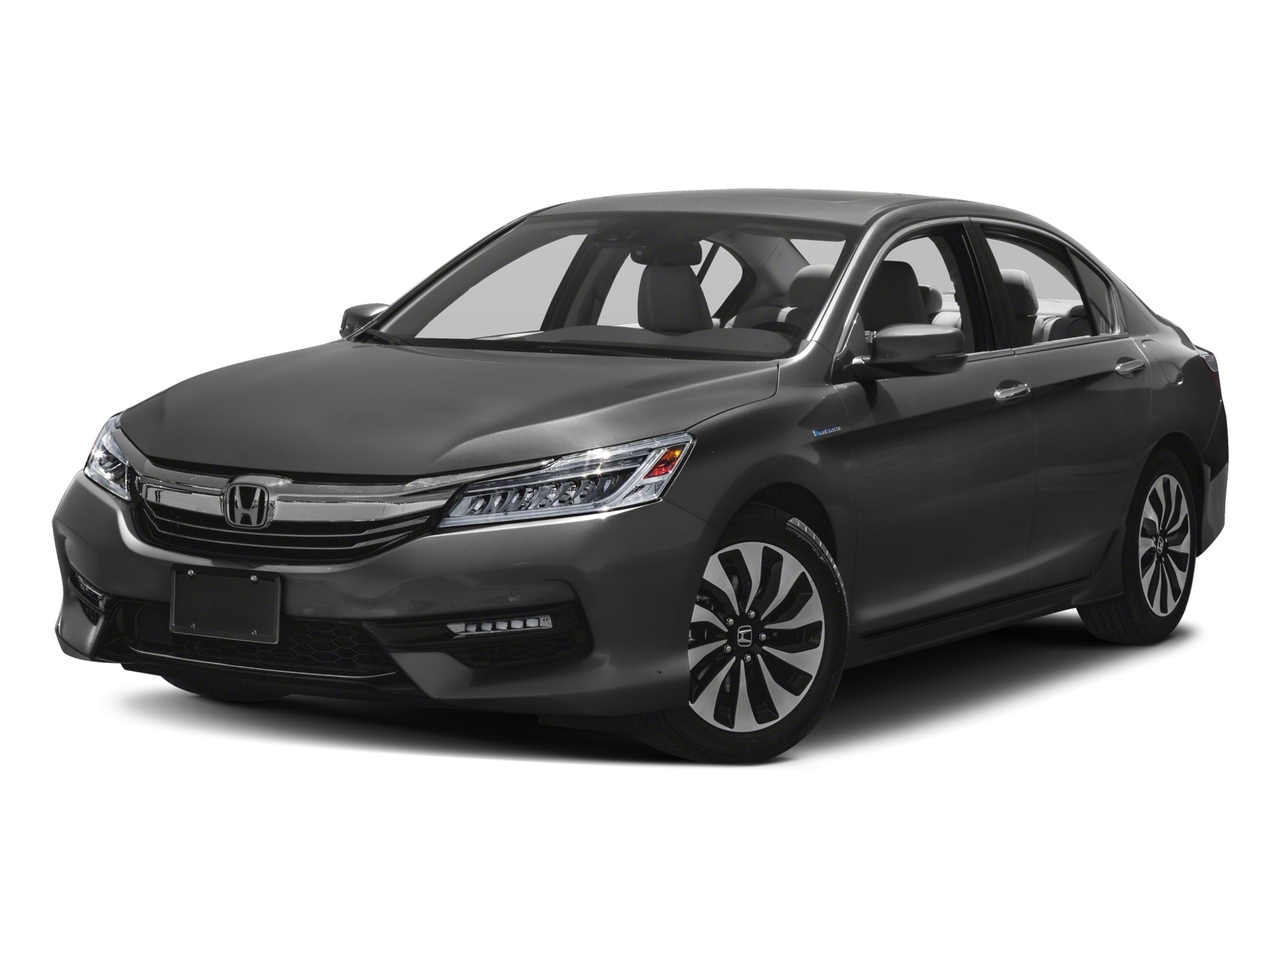 2017 Honda Accord Hybrid - Fort Smith, AR